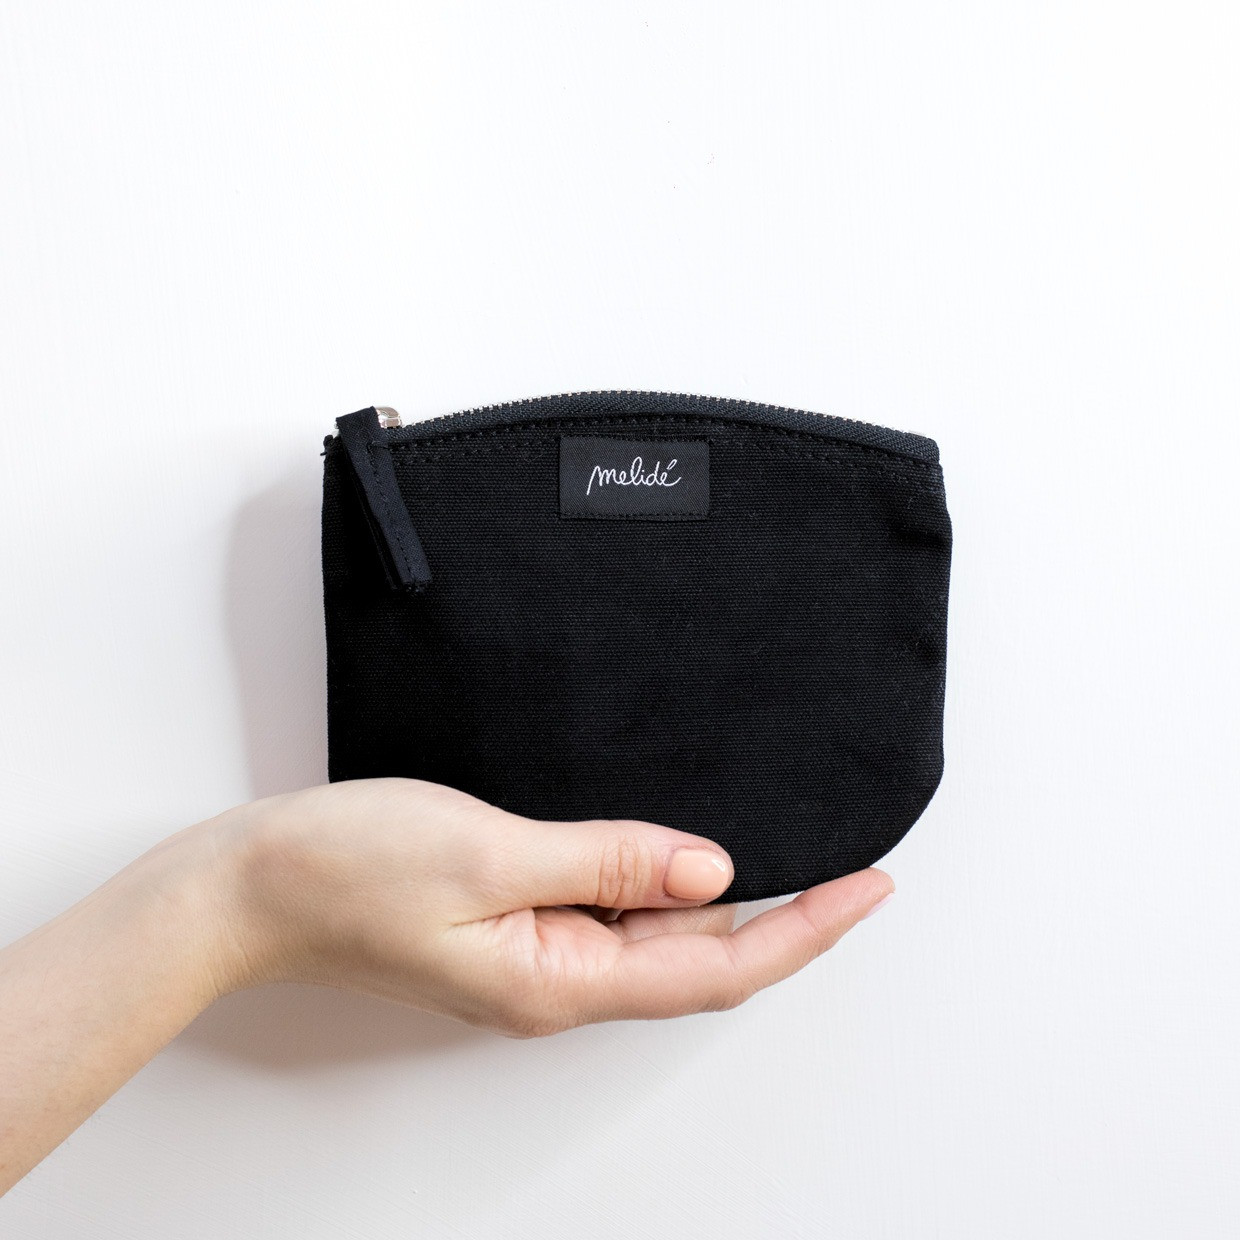 The ZIPPED POUCH S - Monogram